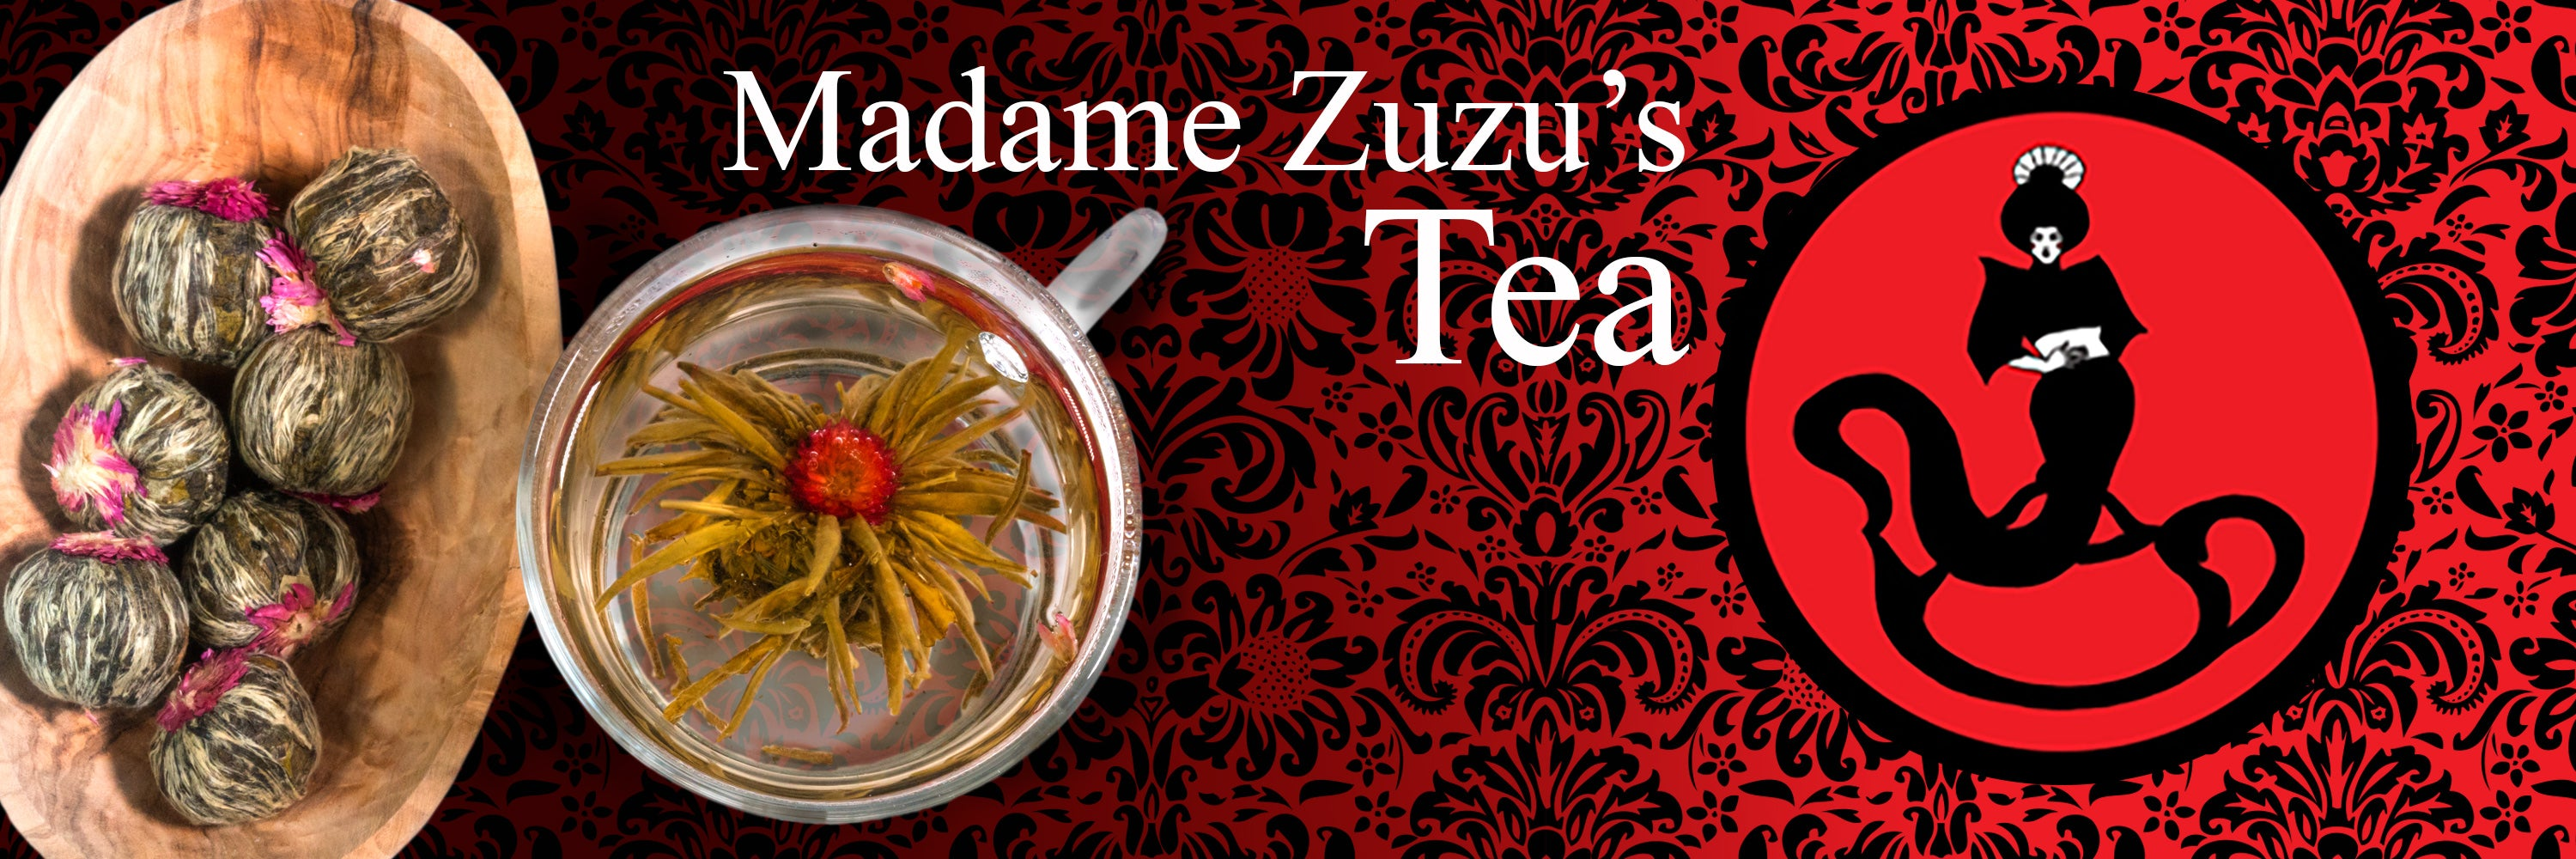 Madame Zuzu's Tea